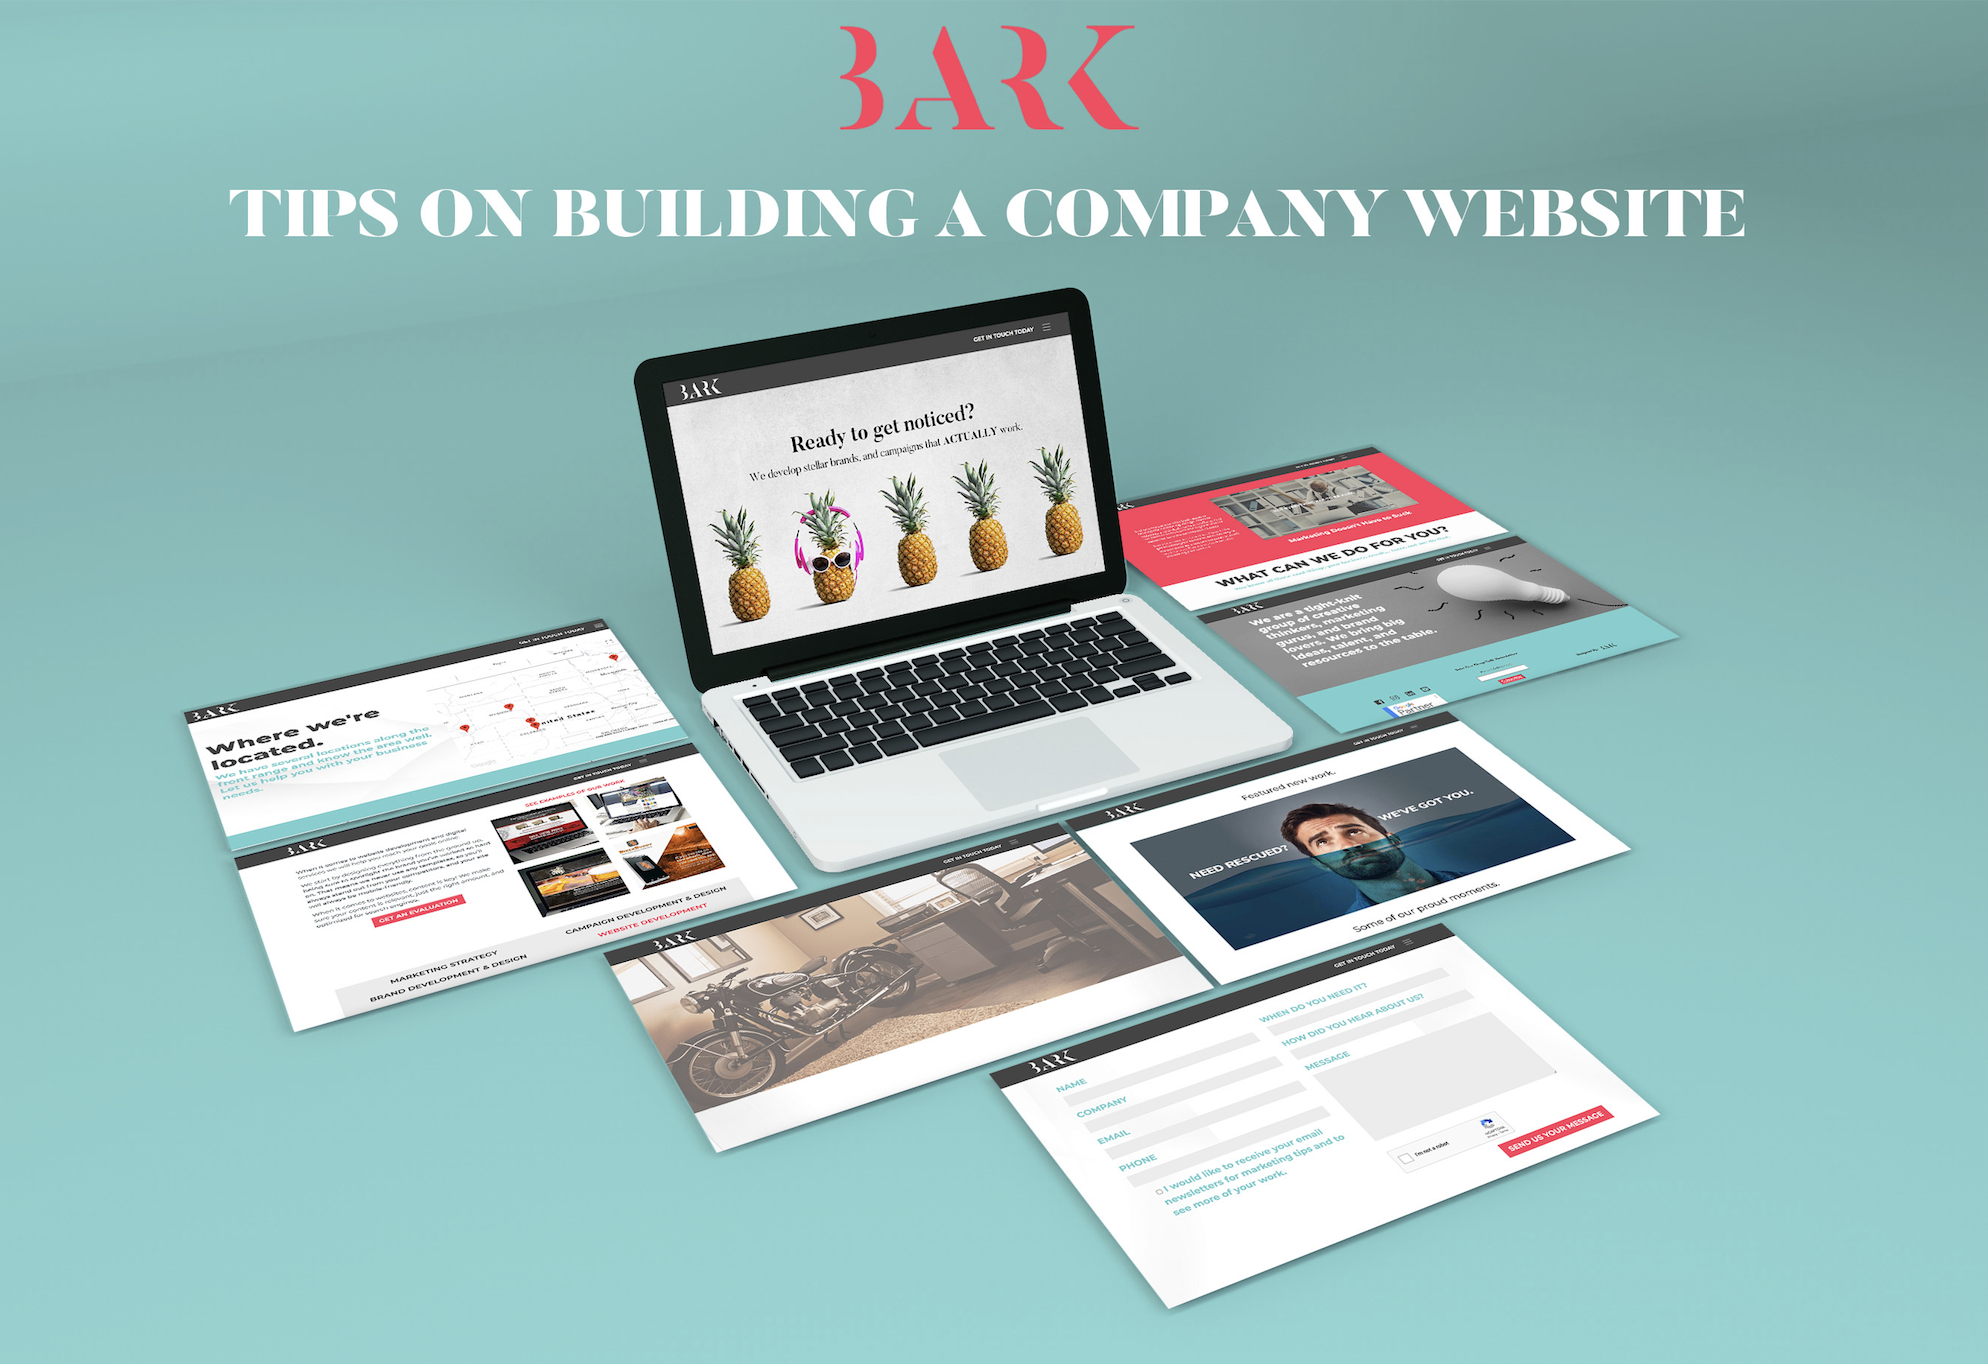 Tips On Building A Company Website